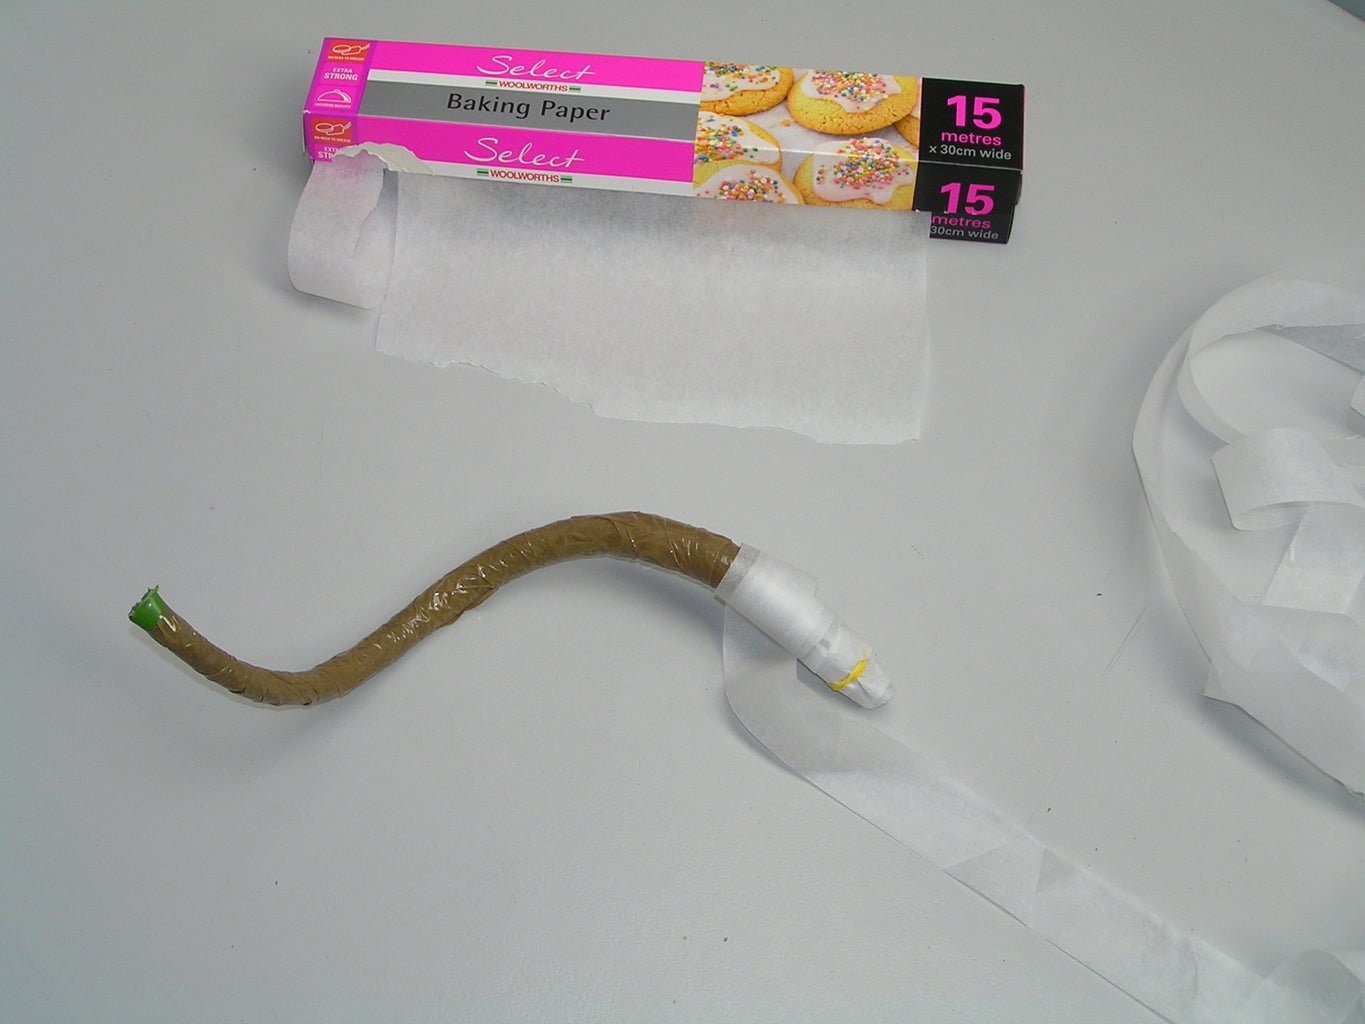 Wrap Plant Support in Cooking Paper.